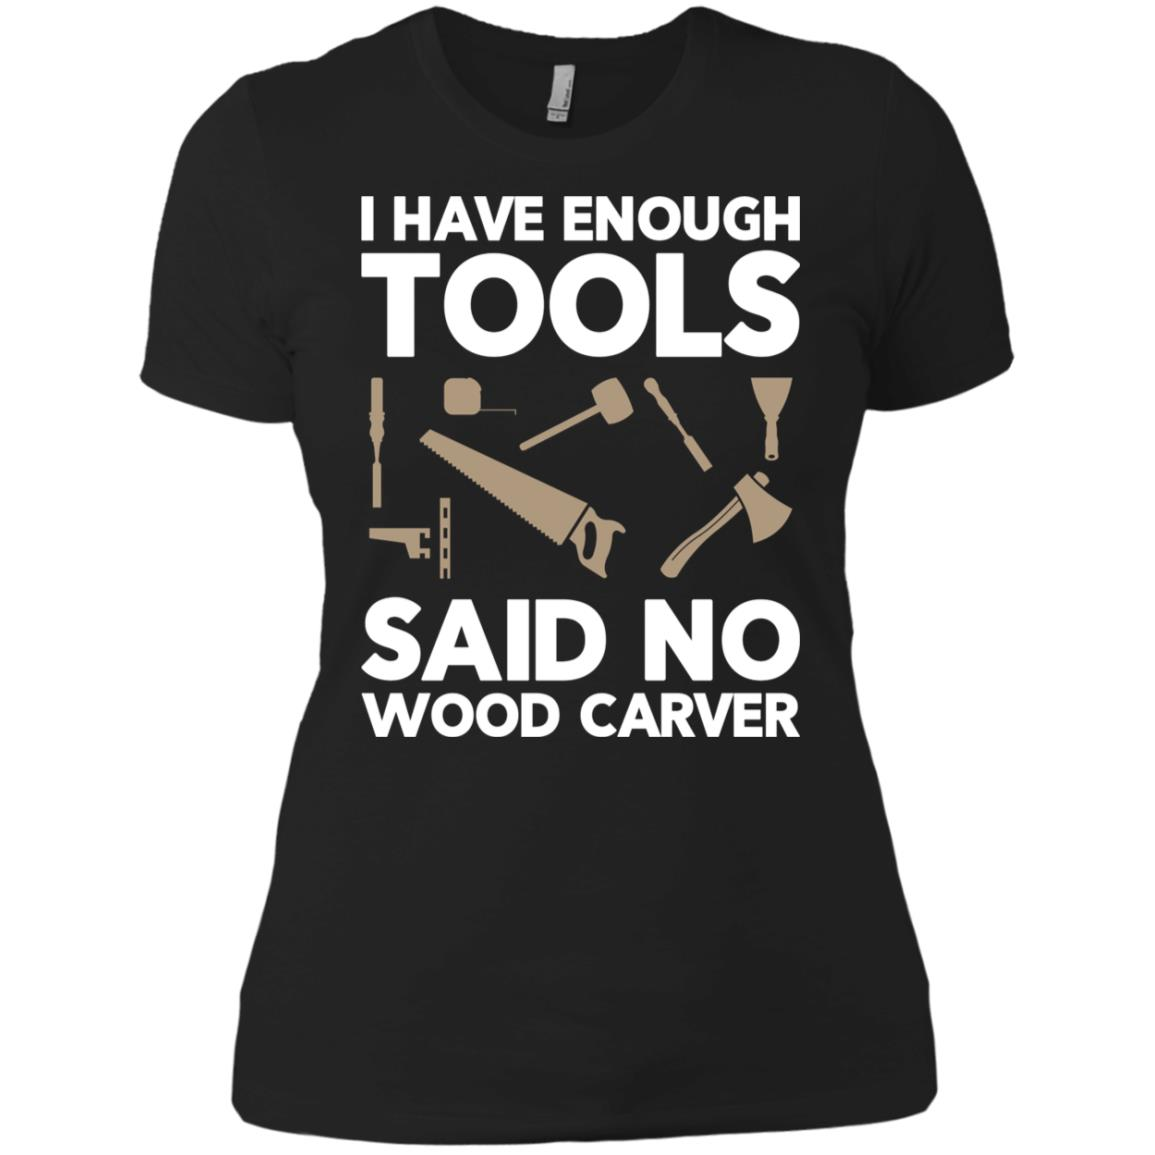 Wood Carving Woodworking -3 Women Short Sleeve